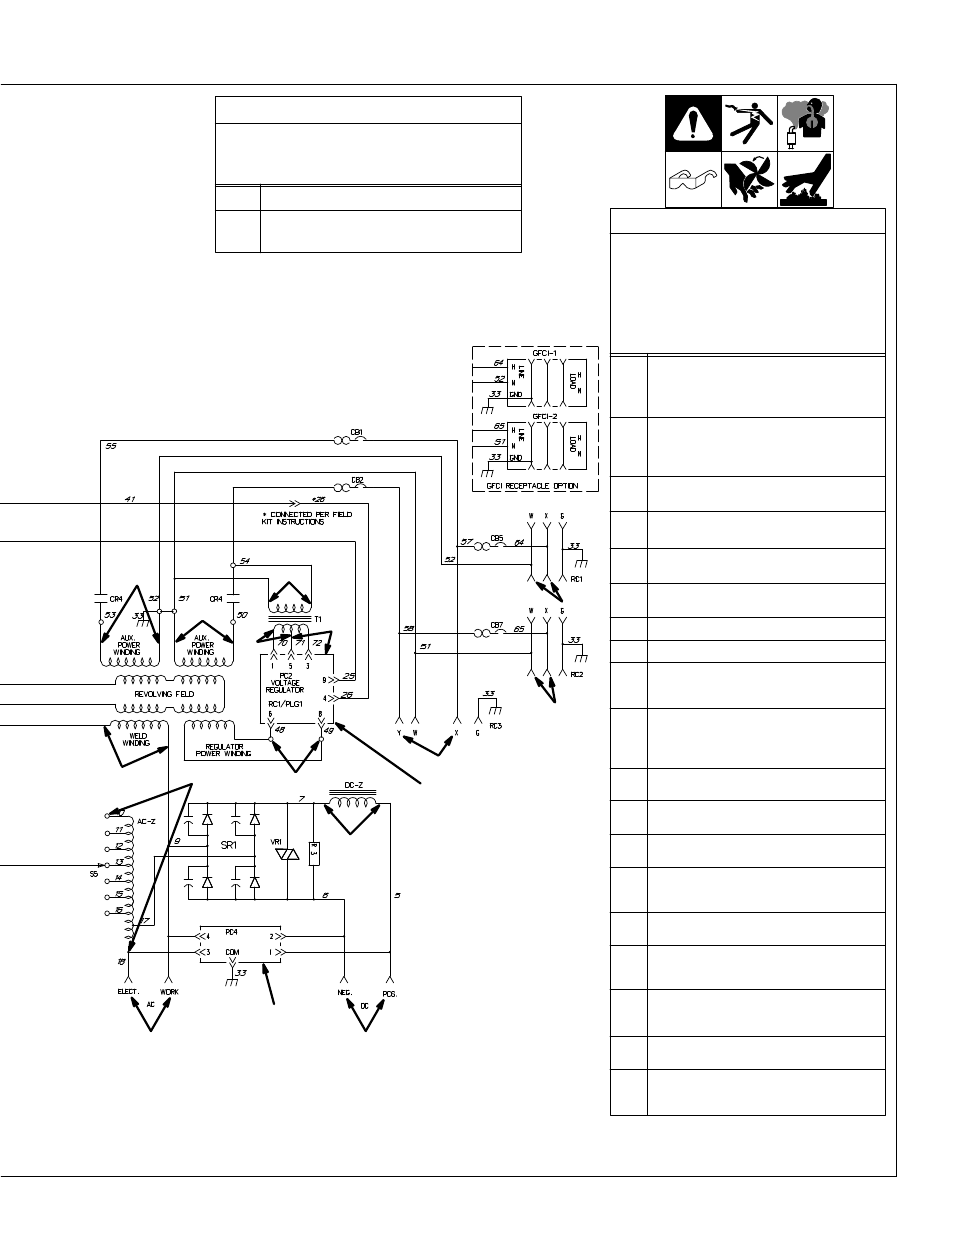 Nordyne Wiring Diagram E1eh 015ha Headlight Circuit